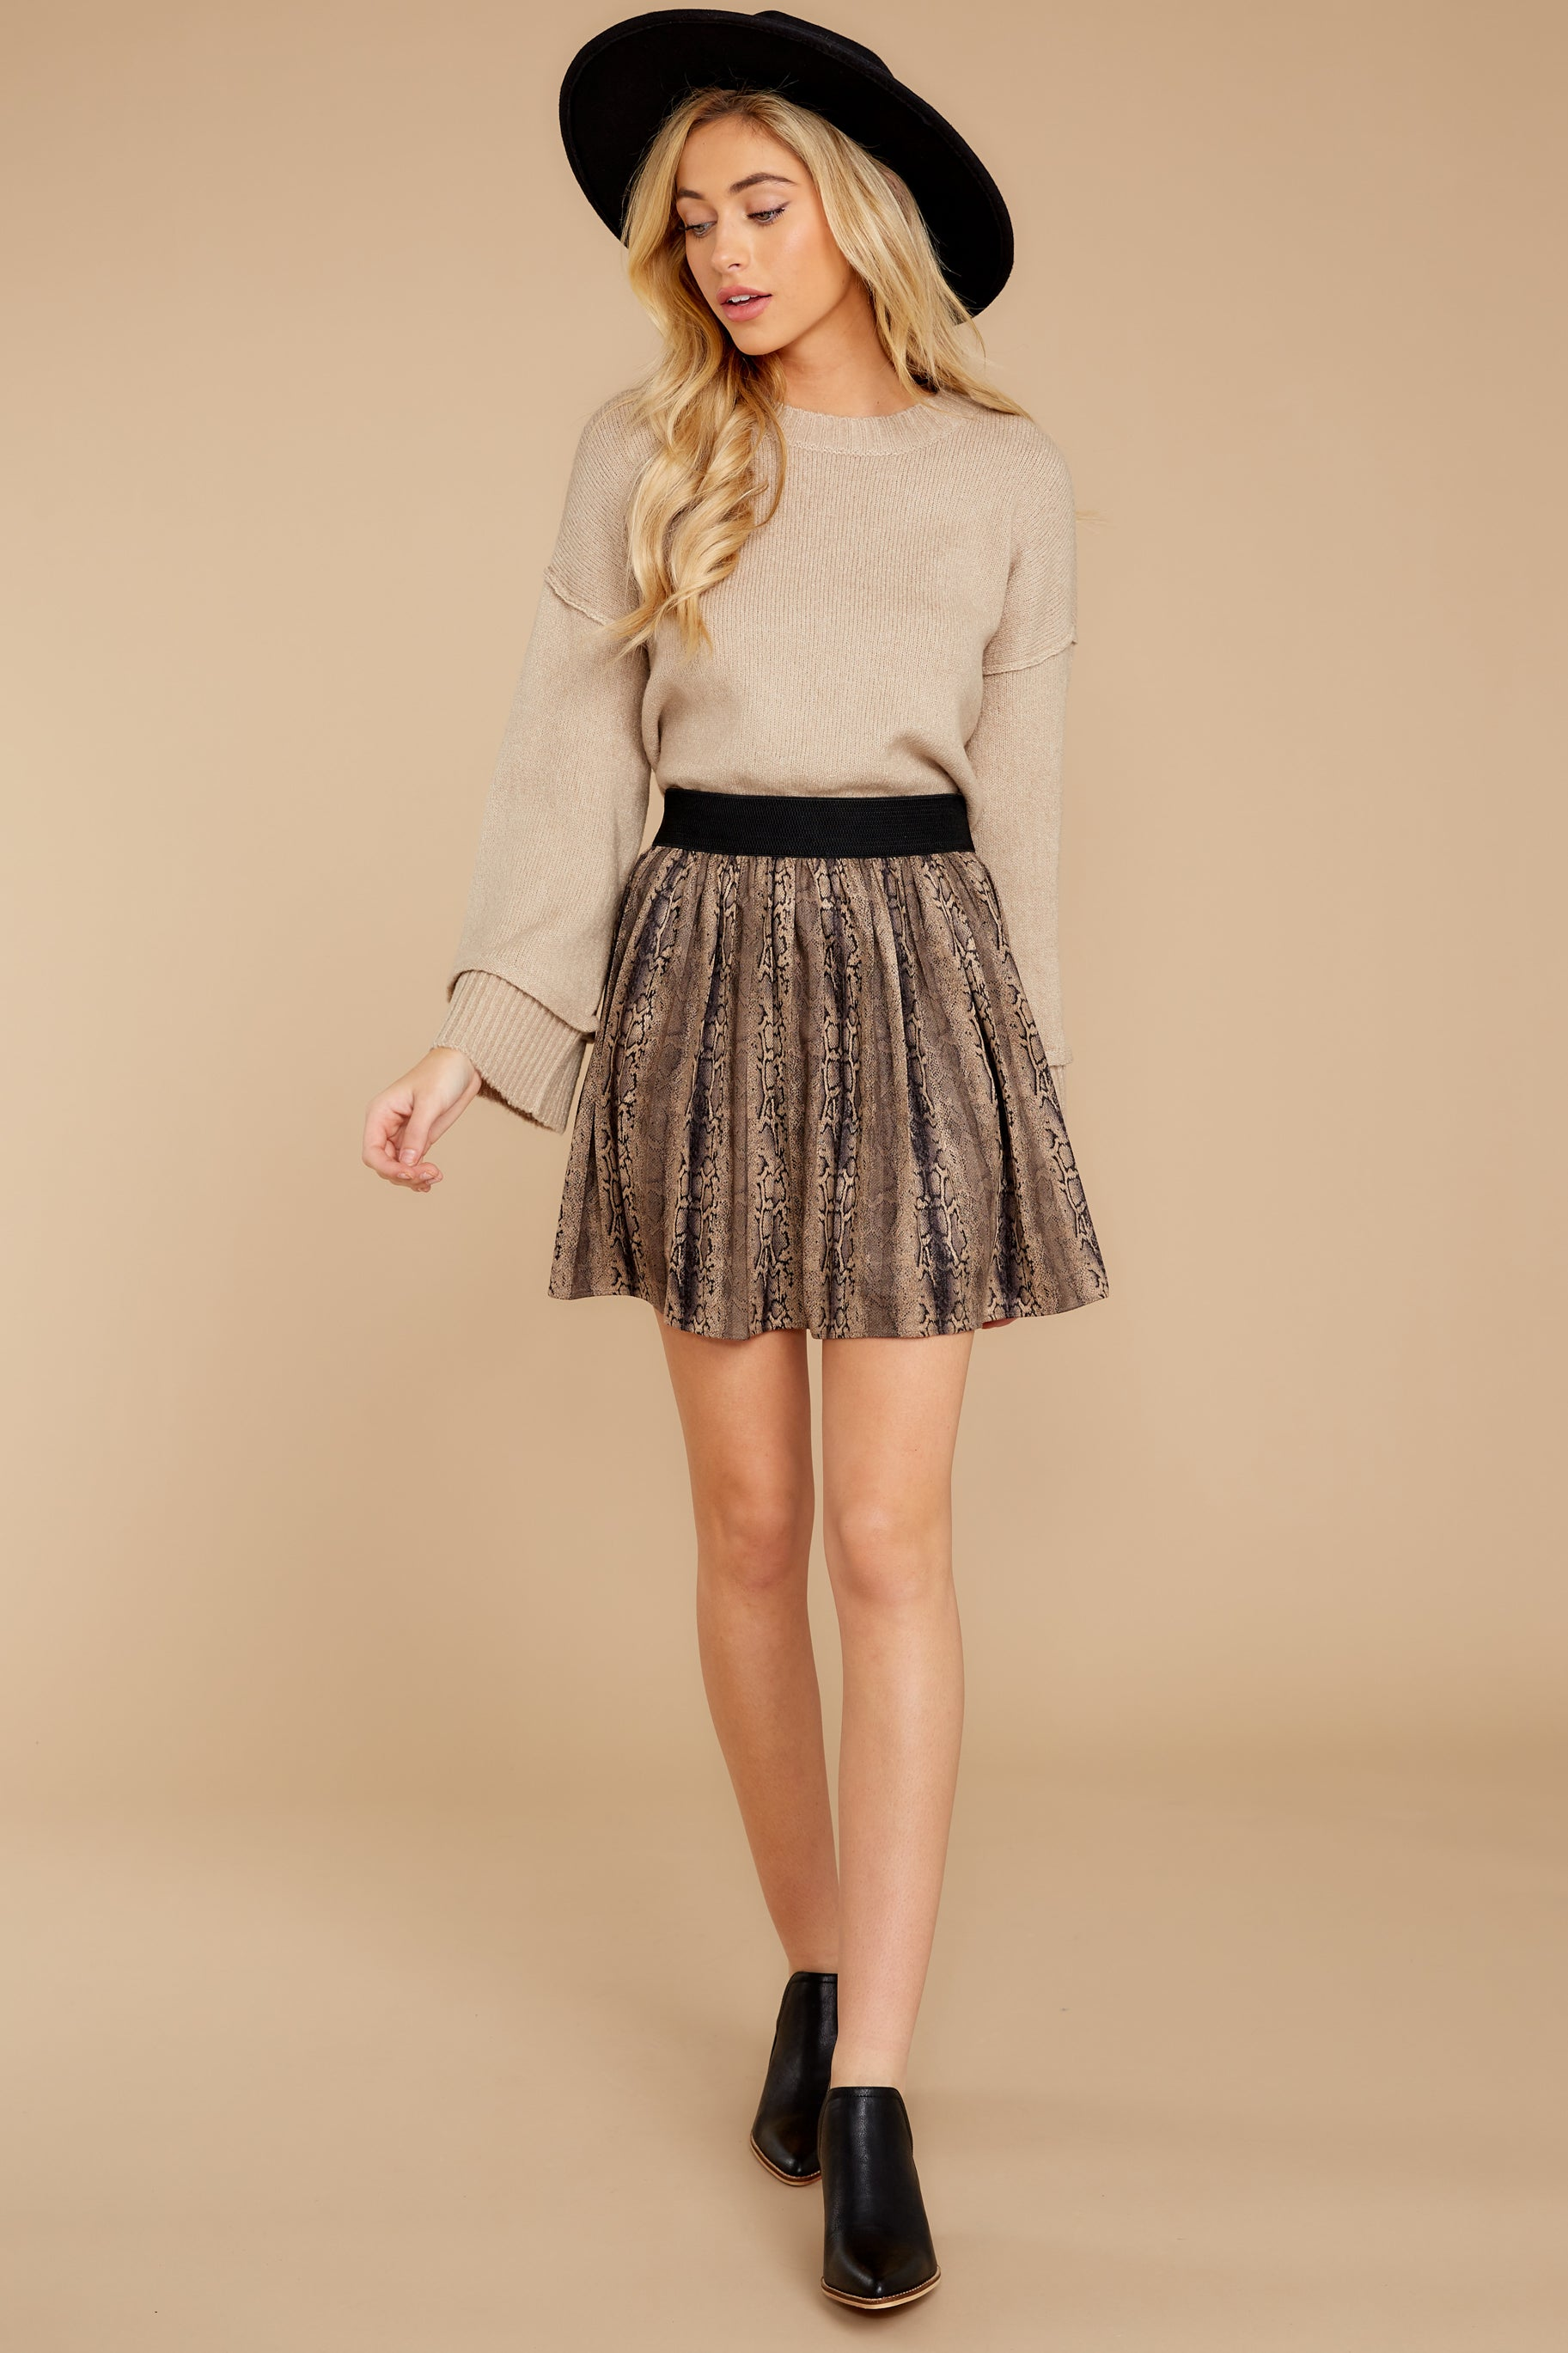 8 Woman About Town Warm Taupe Sweater at reddressboutique.com